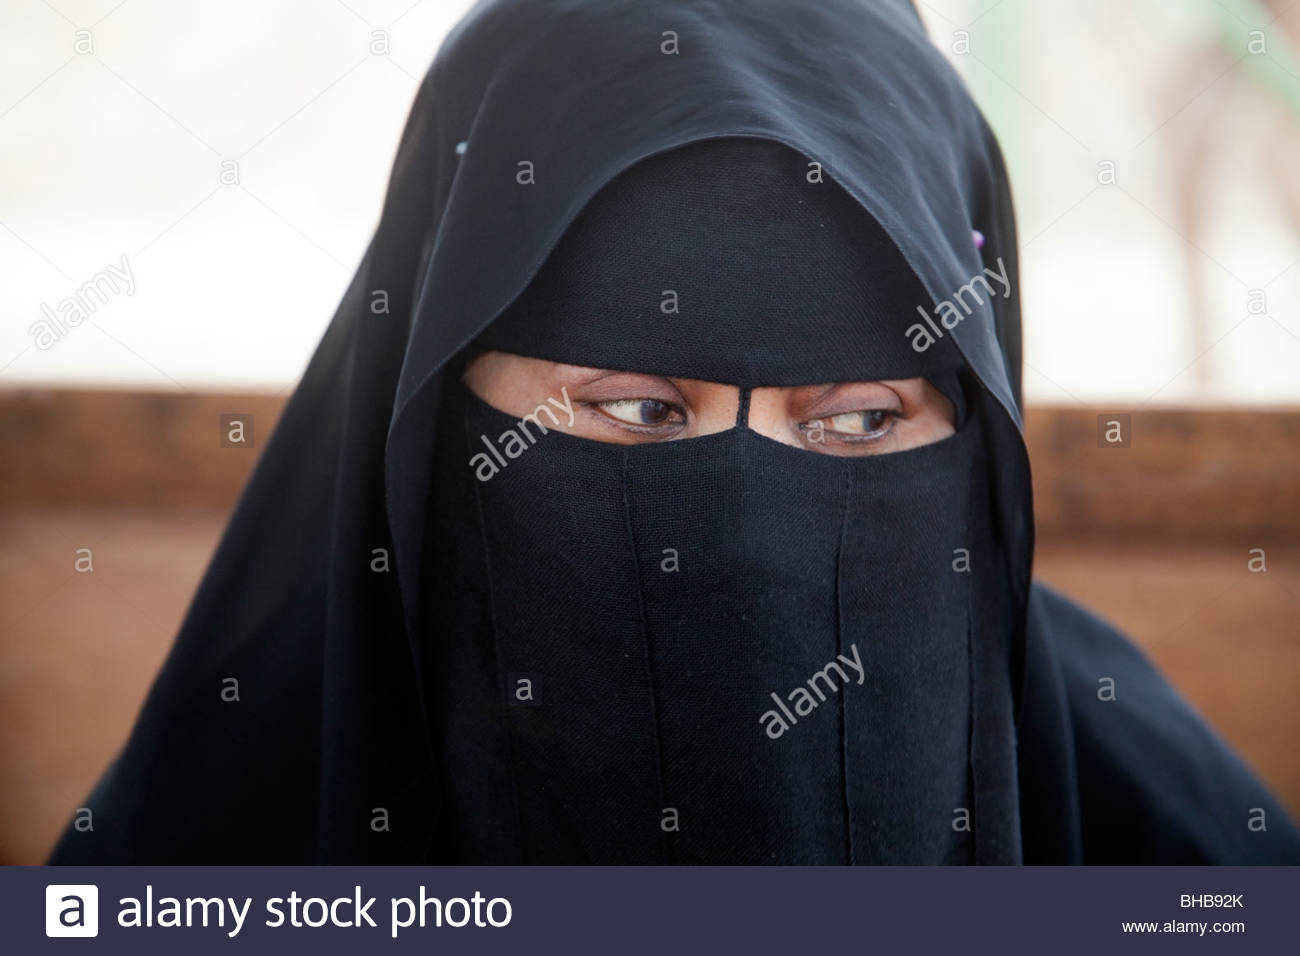 arab arabian Arabian Peninsula Asia burka Dhofar islam; islamic khareef season; wet season monsoon; rainfall Oman - Stock Image